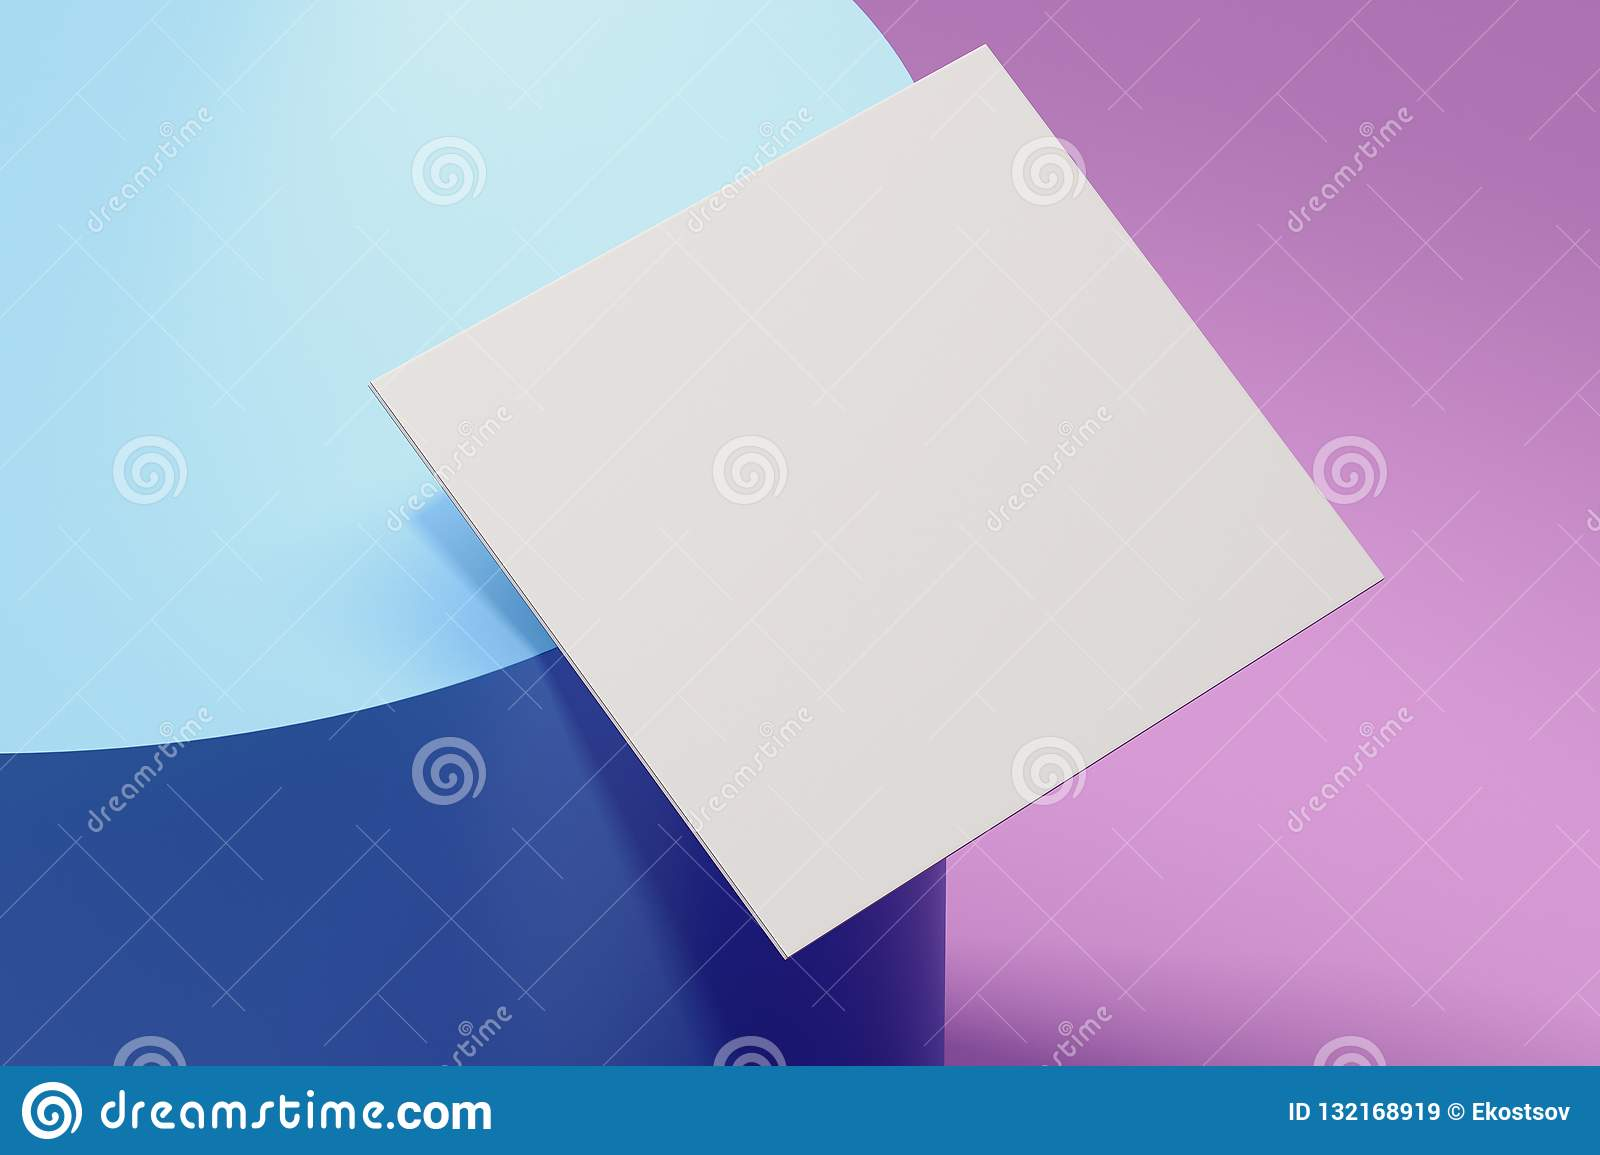 Close up of white sheet of paper on multicoloredbackground, 3d rendering.